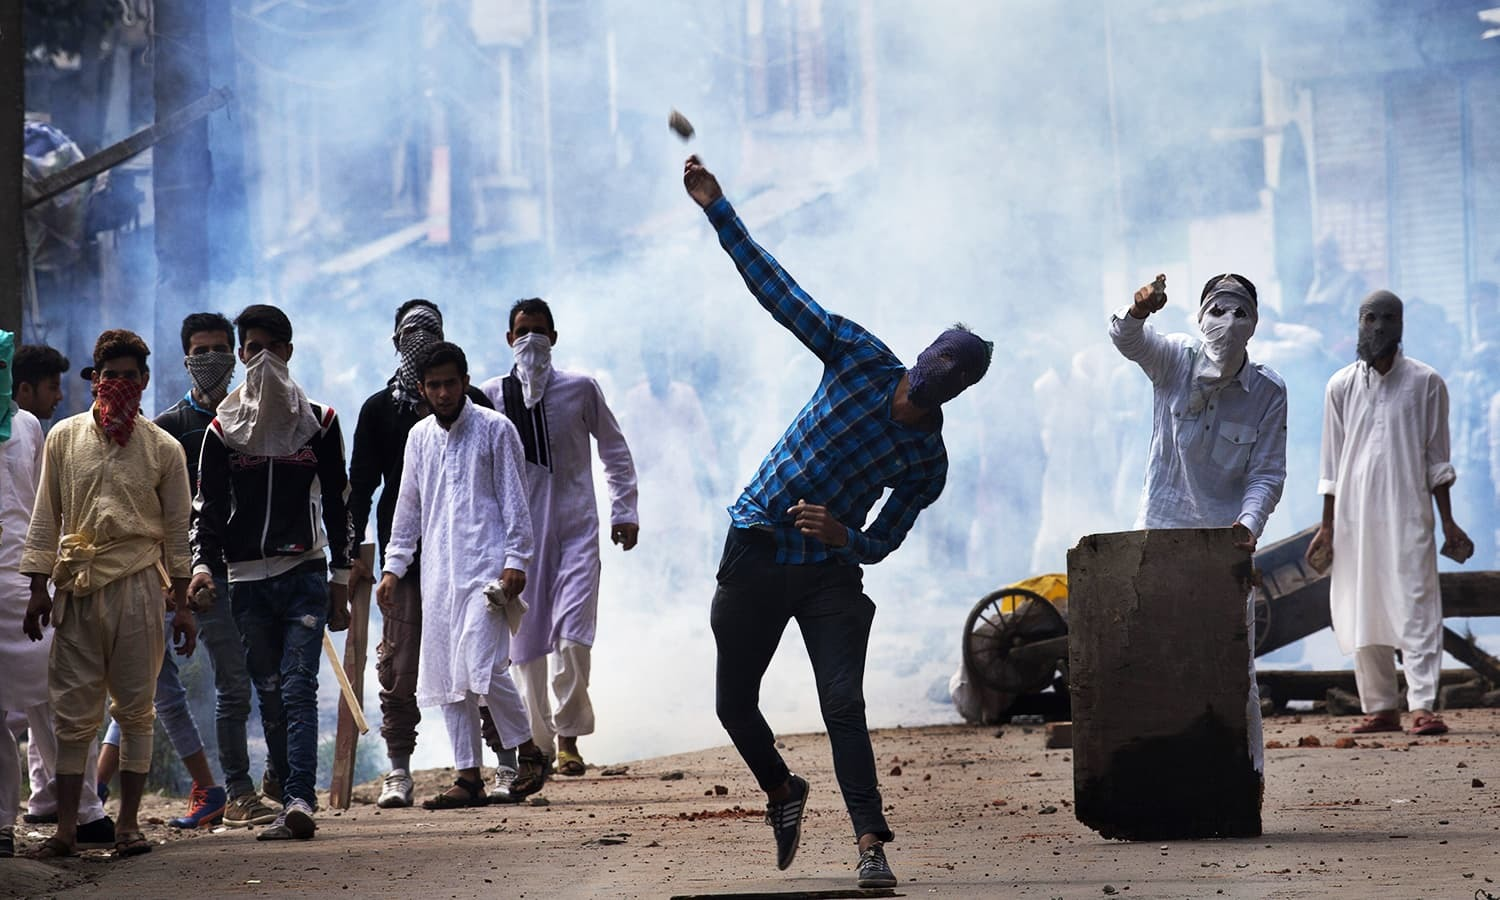 Stone-throwing protesters in India-held Kashmir mistakenly killed a driver of what they thought was a military truck. 1 AP/File